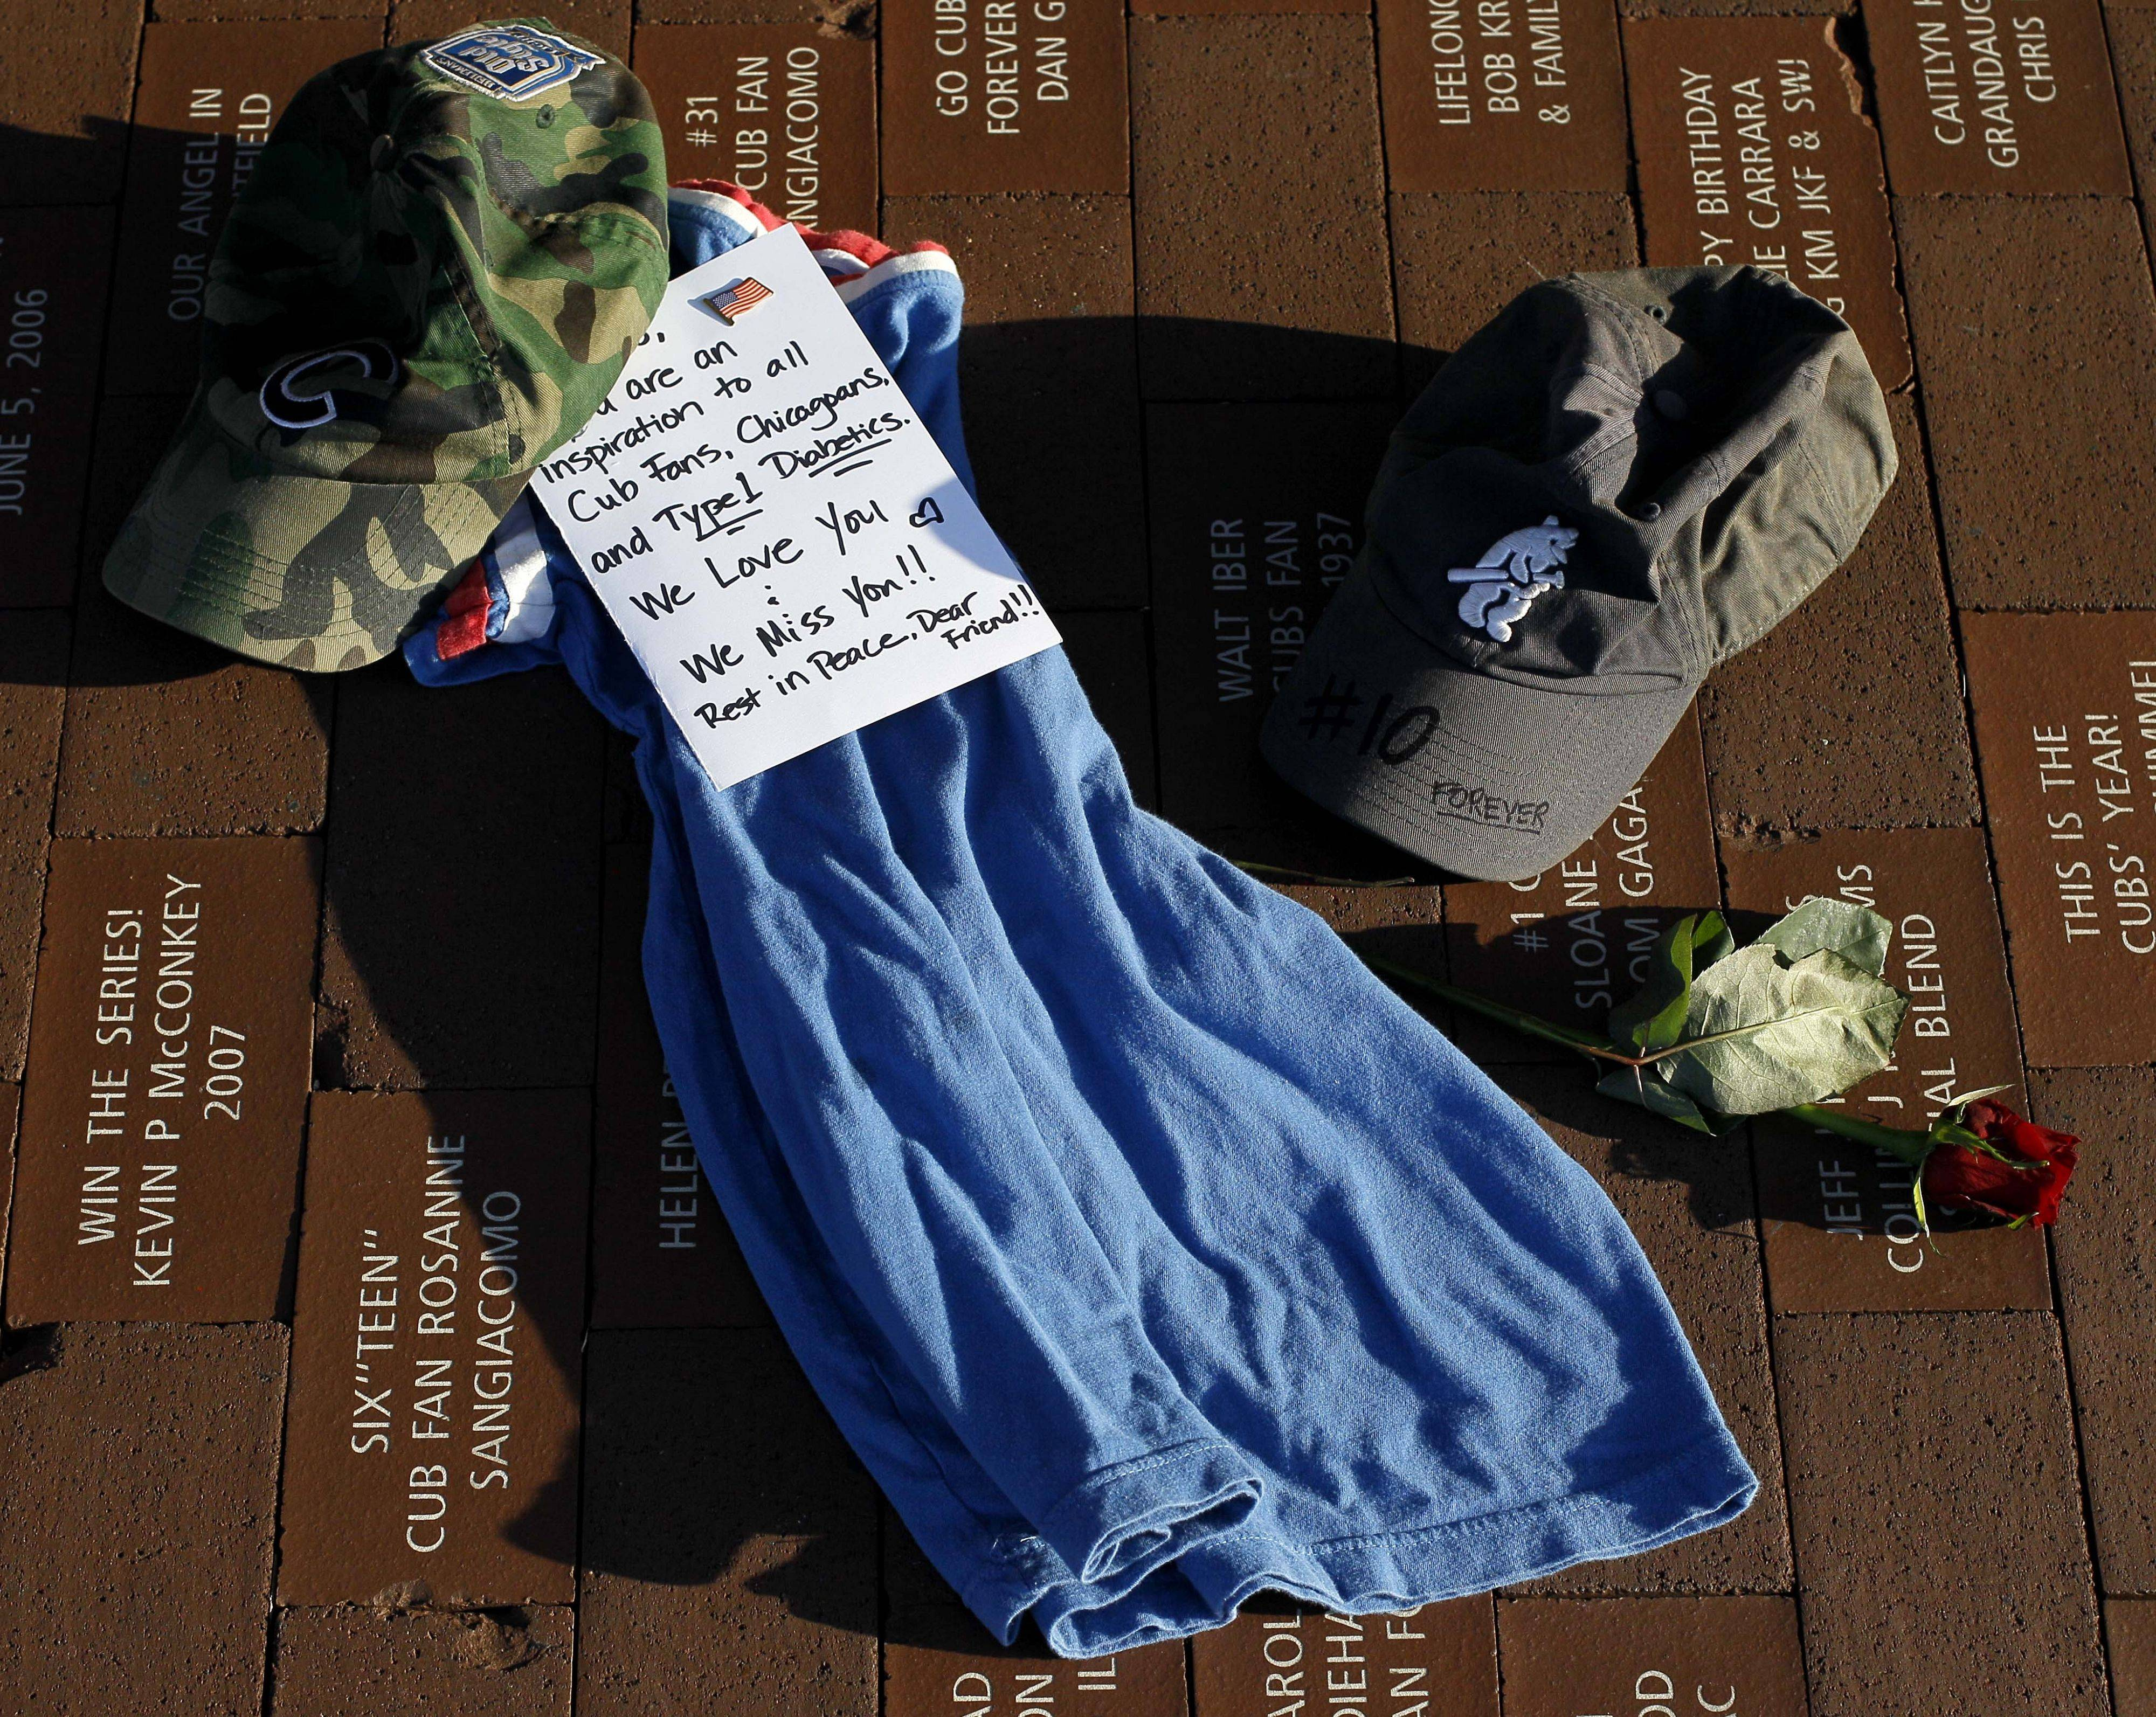 A memorial to former Chicago Cubs' Ron Santo, one of the greatest plays in Cubs history, is shown outside Wrigley Field after news of Santo's death was announced Friday.